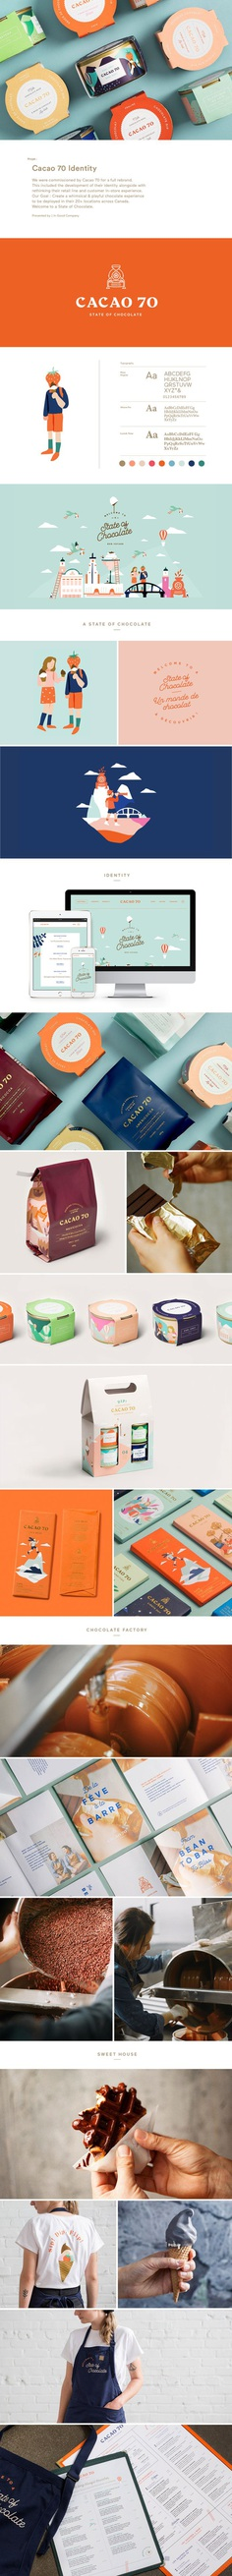 CACAO 70, Brand Identity on Behance